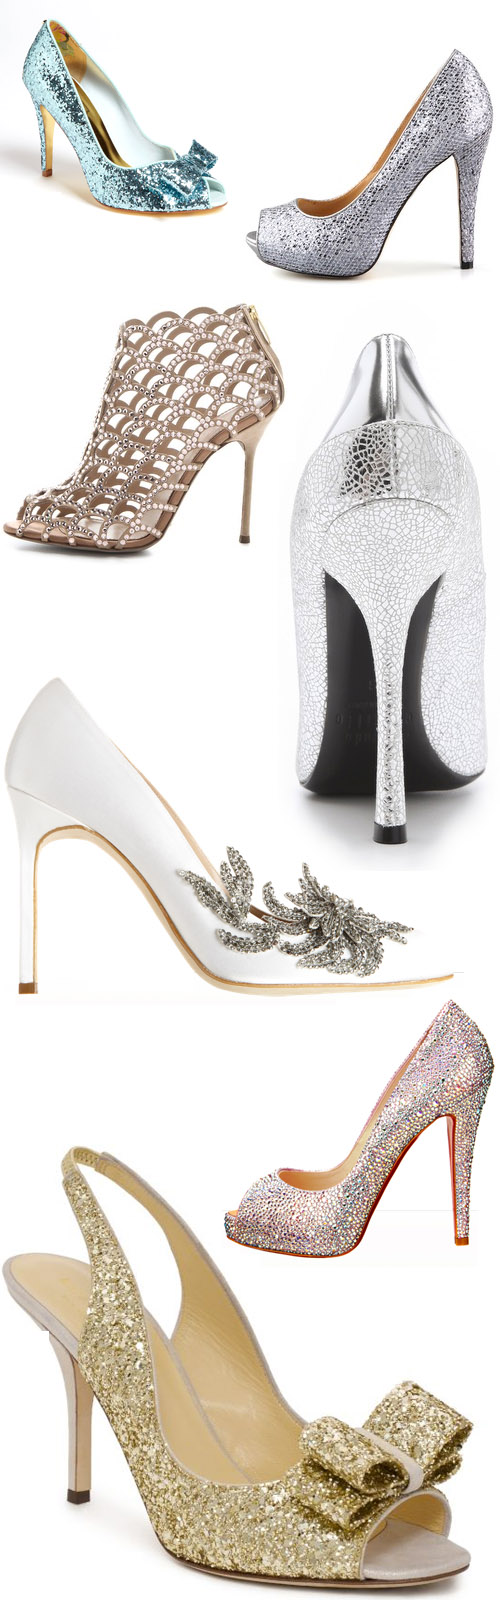 c7b8f8fe35b6 Sparkly Bridal Shoes for Holiday Weddings!